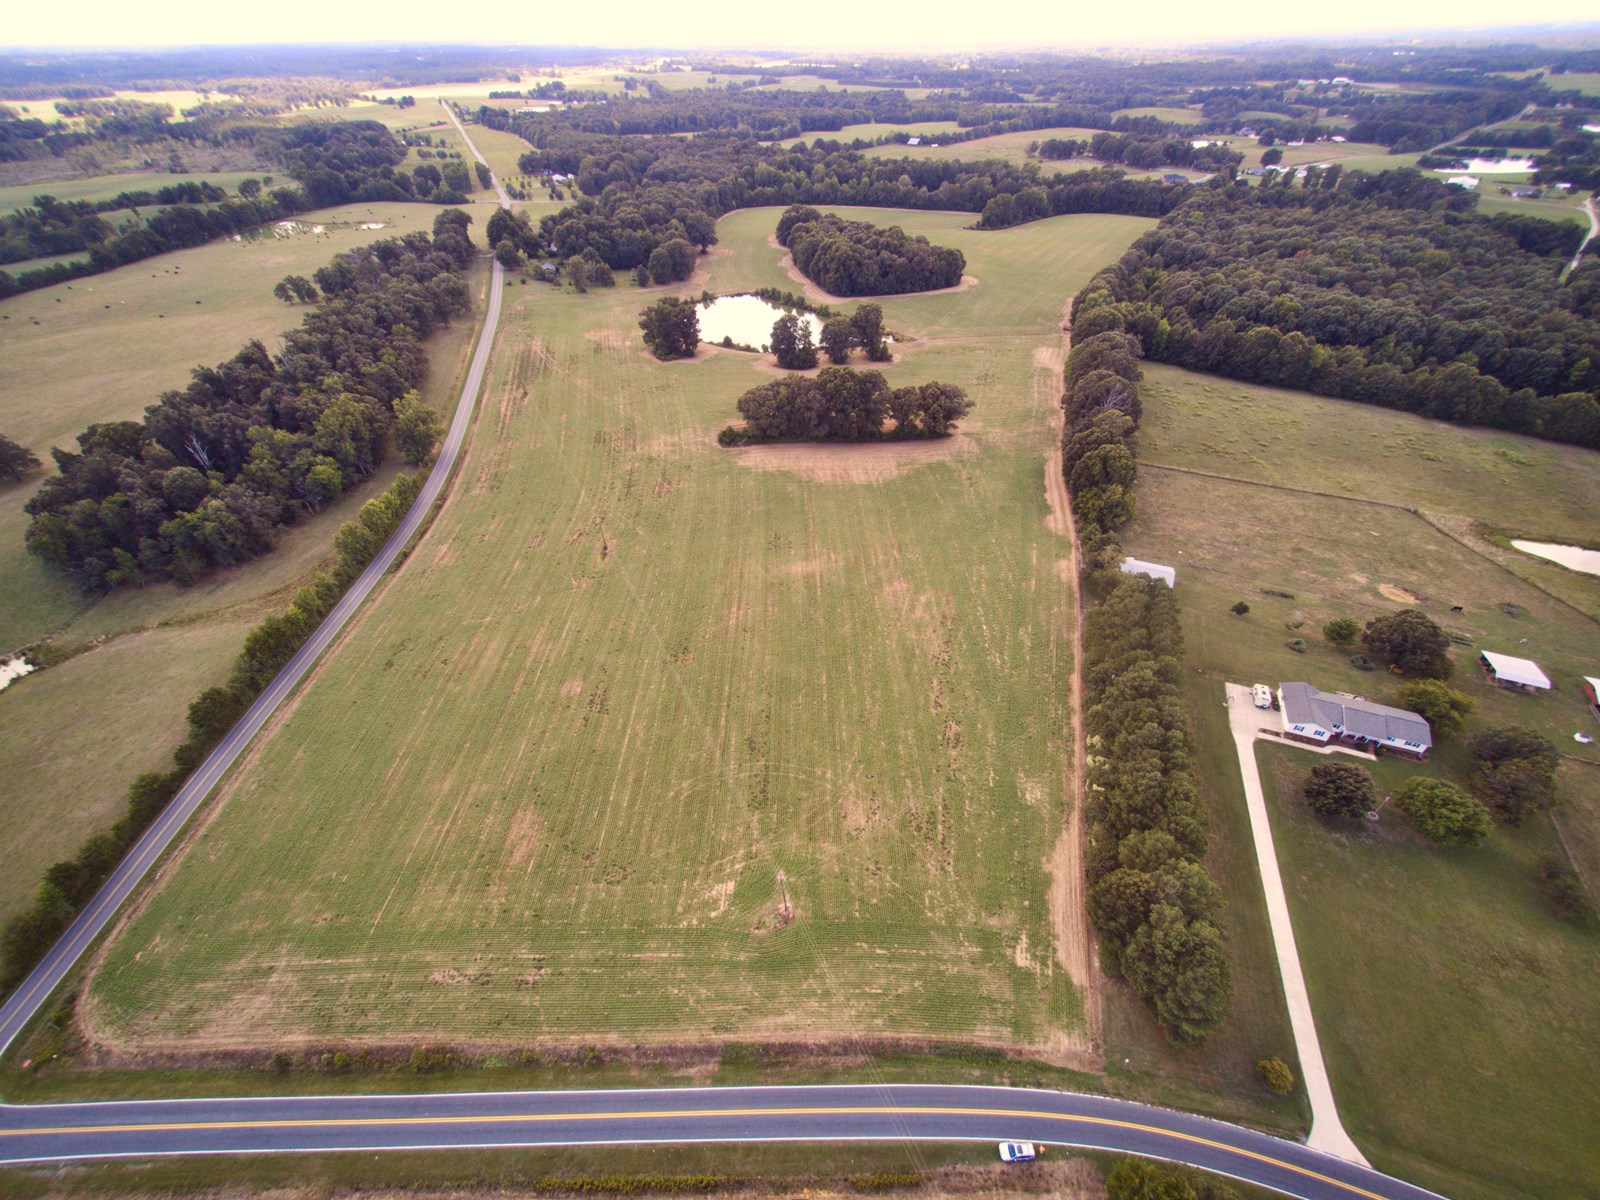 Land For Sale in Union County NC